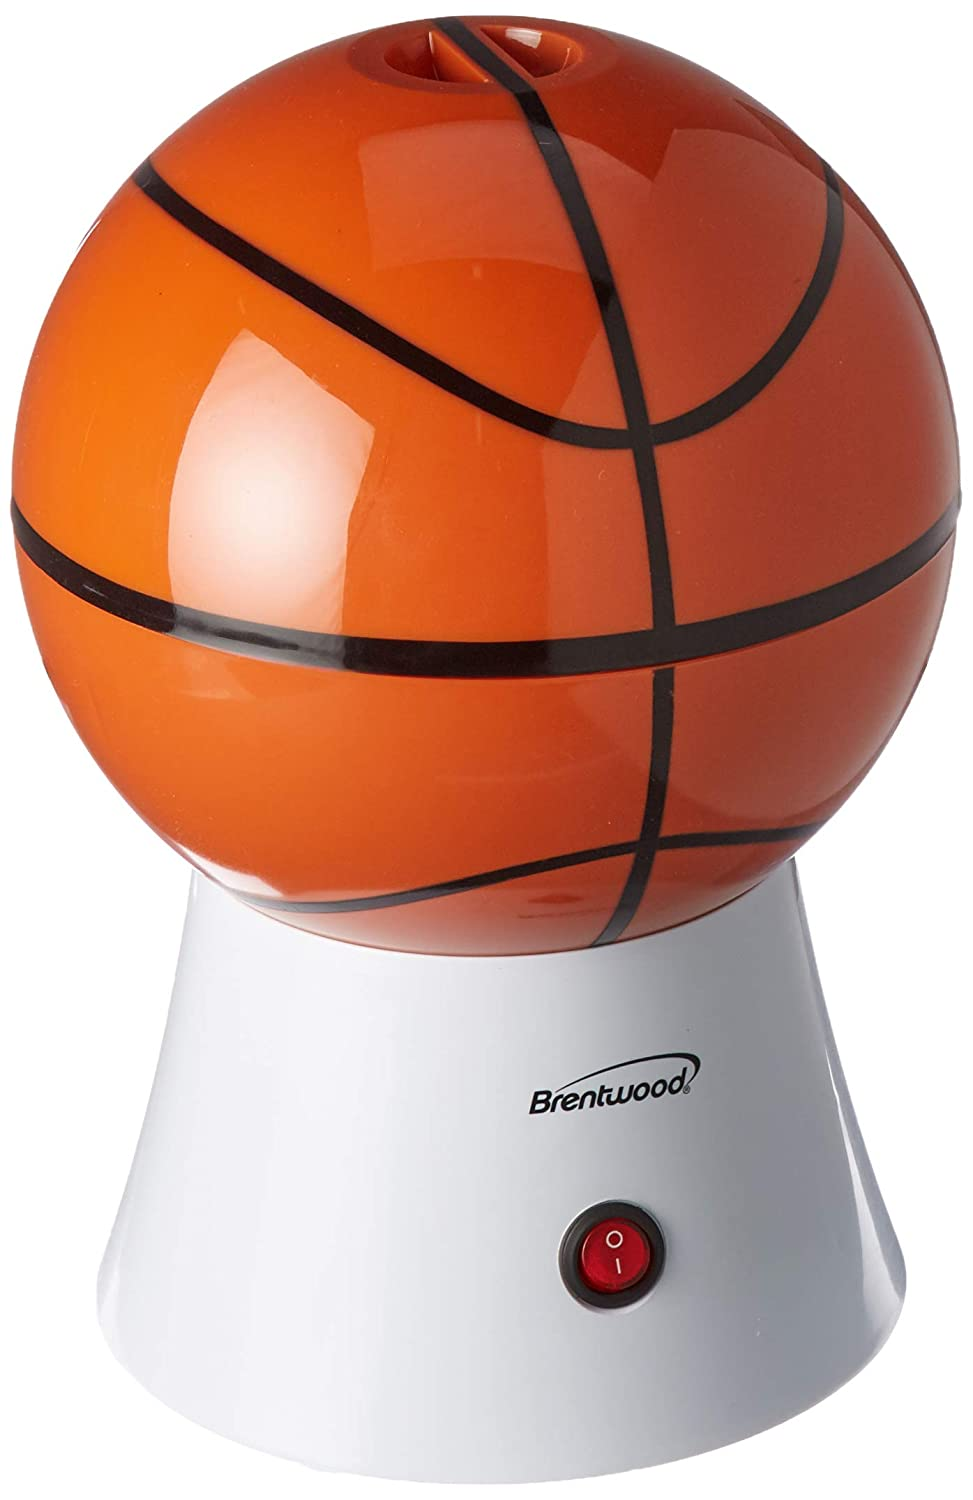 Brentwood pc-484 baloncesto palomitero, 20,3 cm) X (X 11,5, color ...